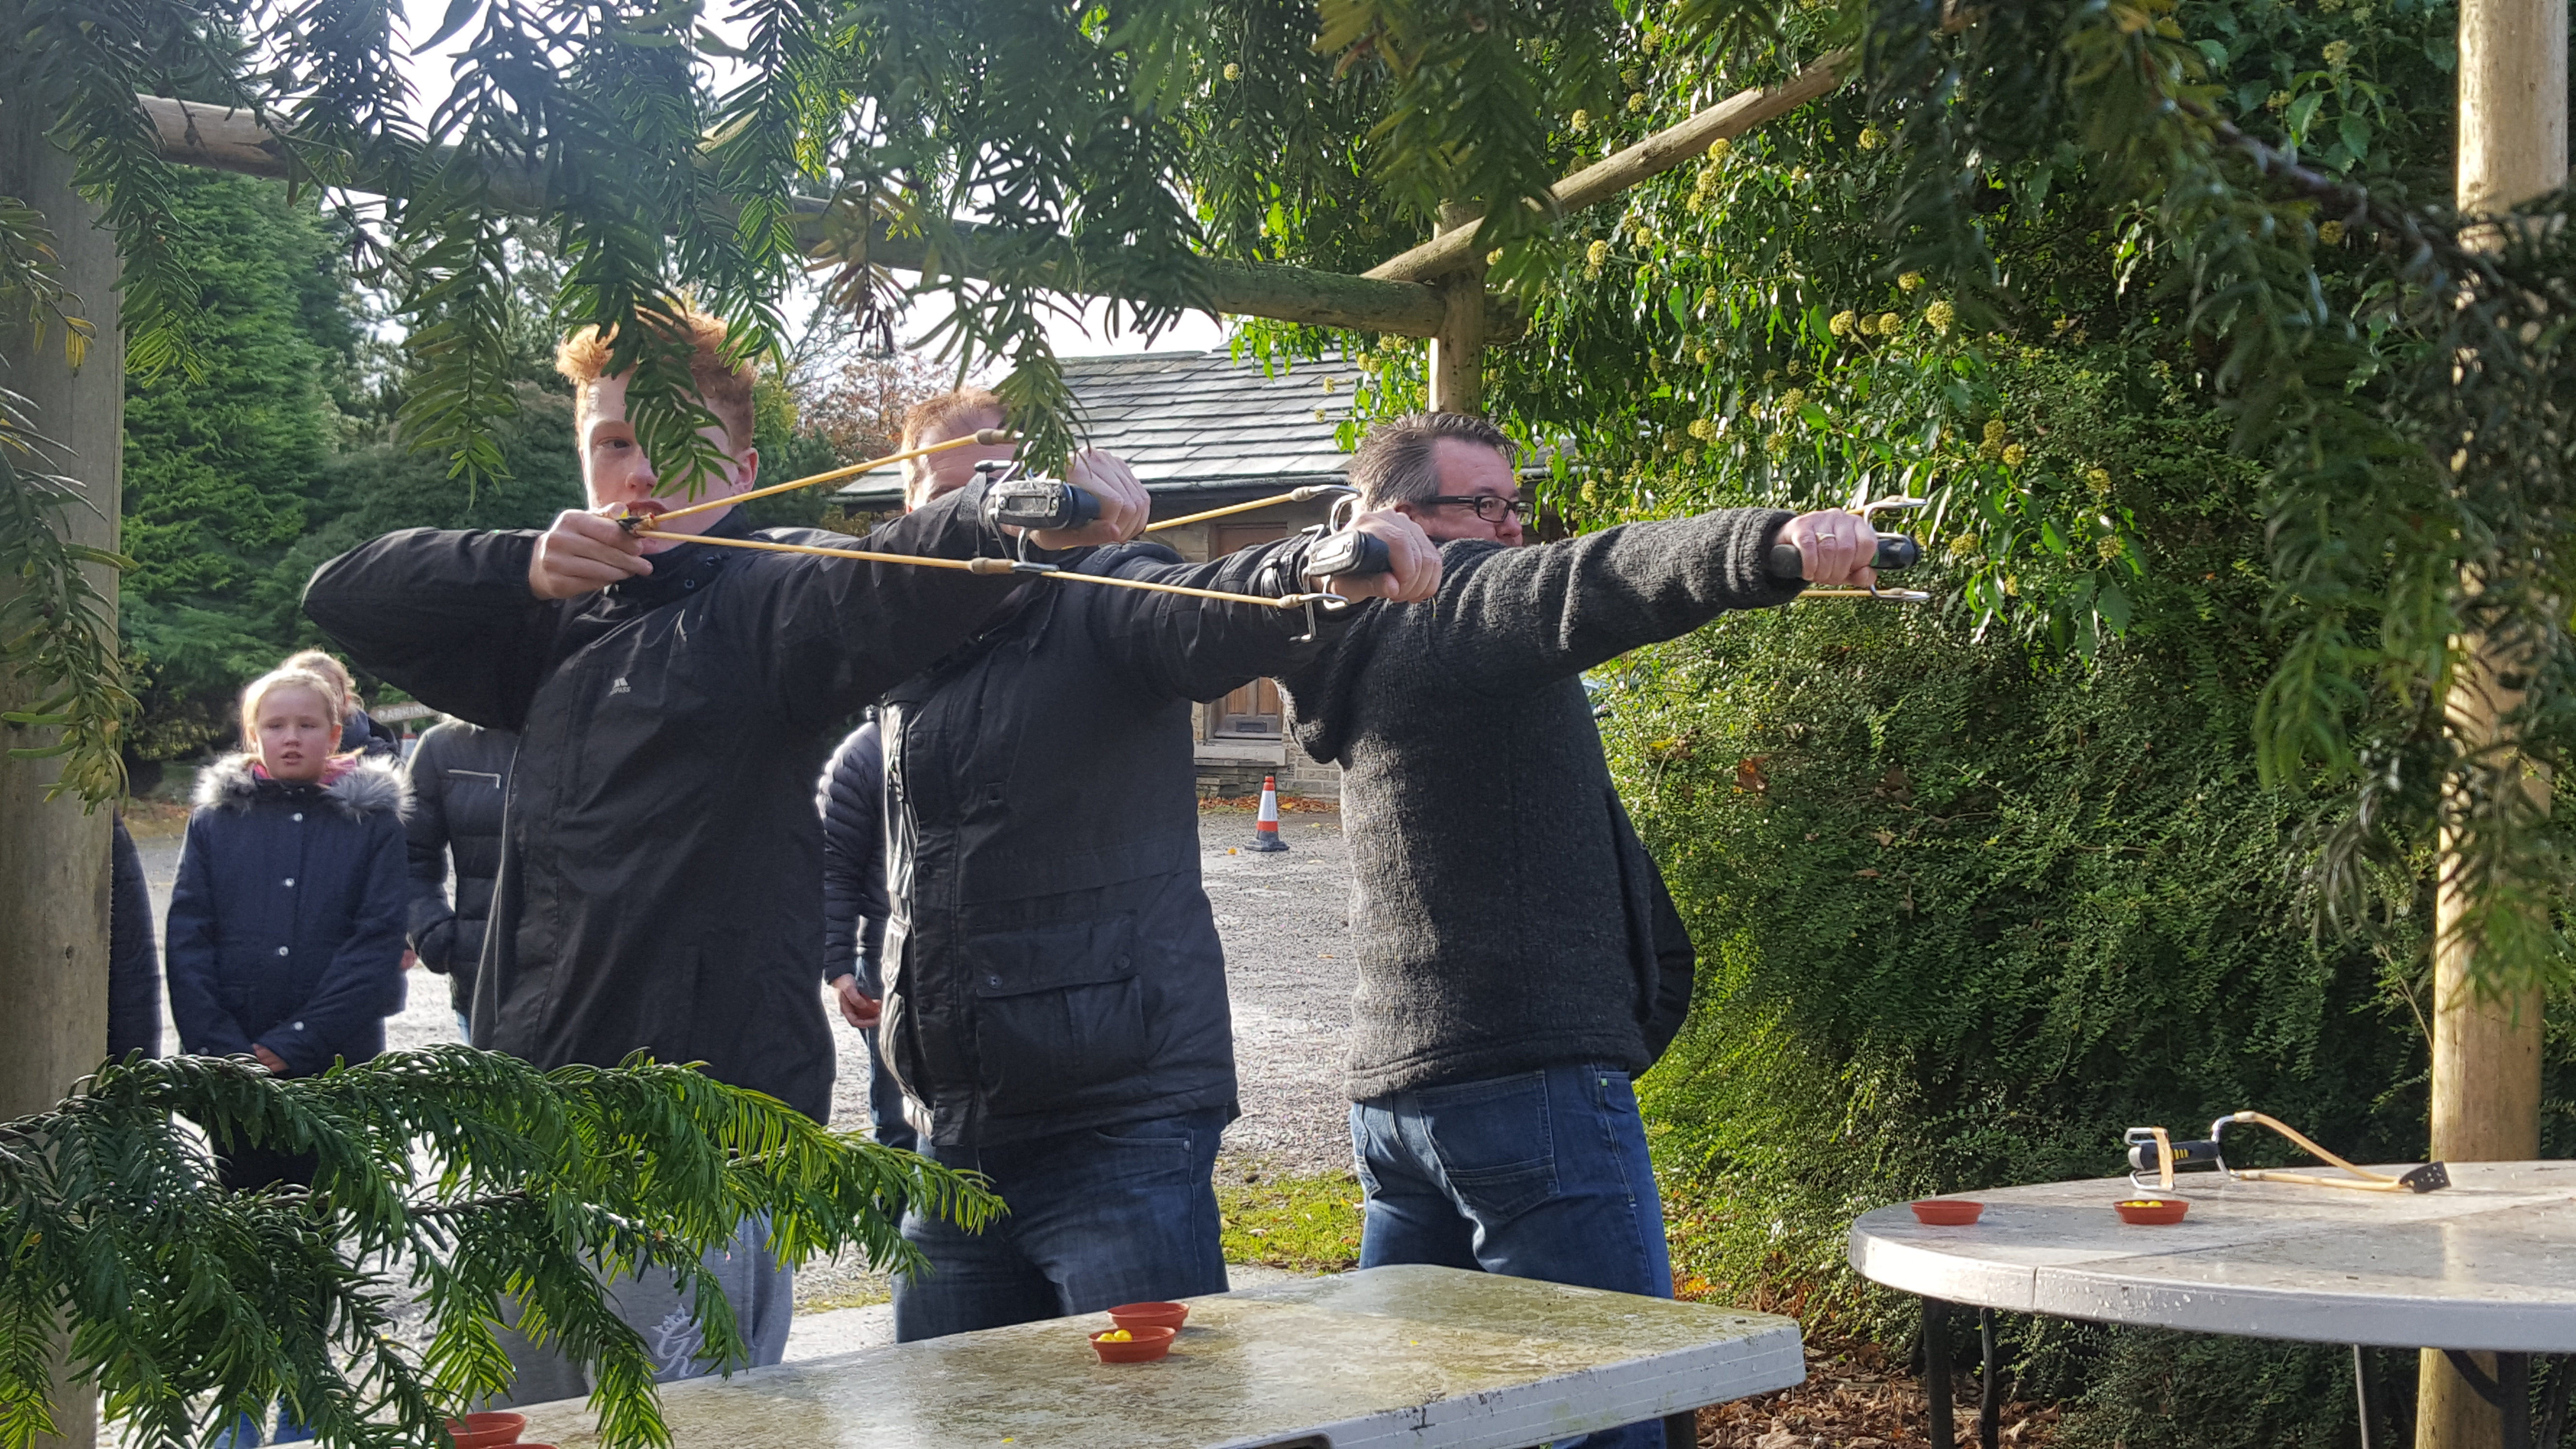 Slingshots with paintballs